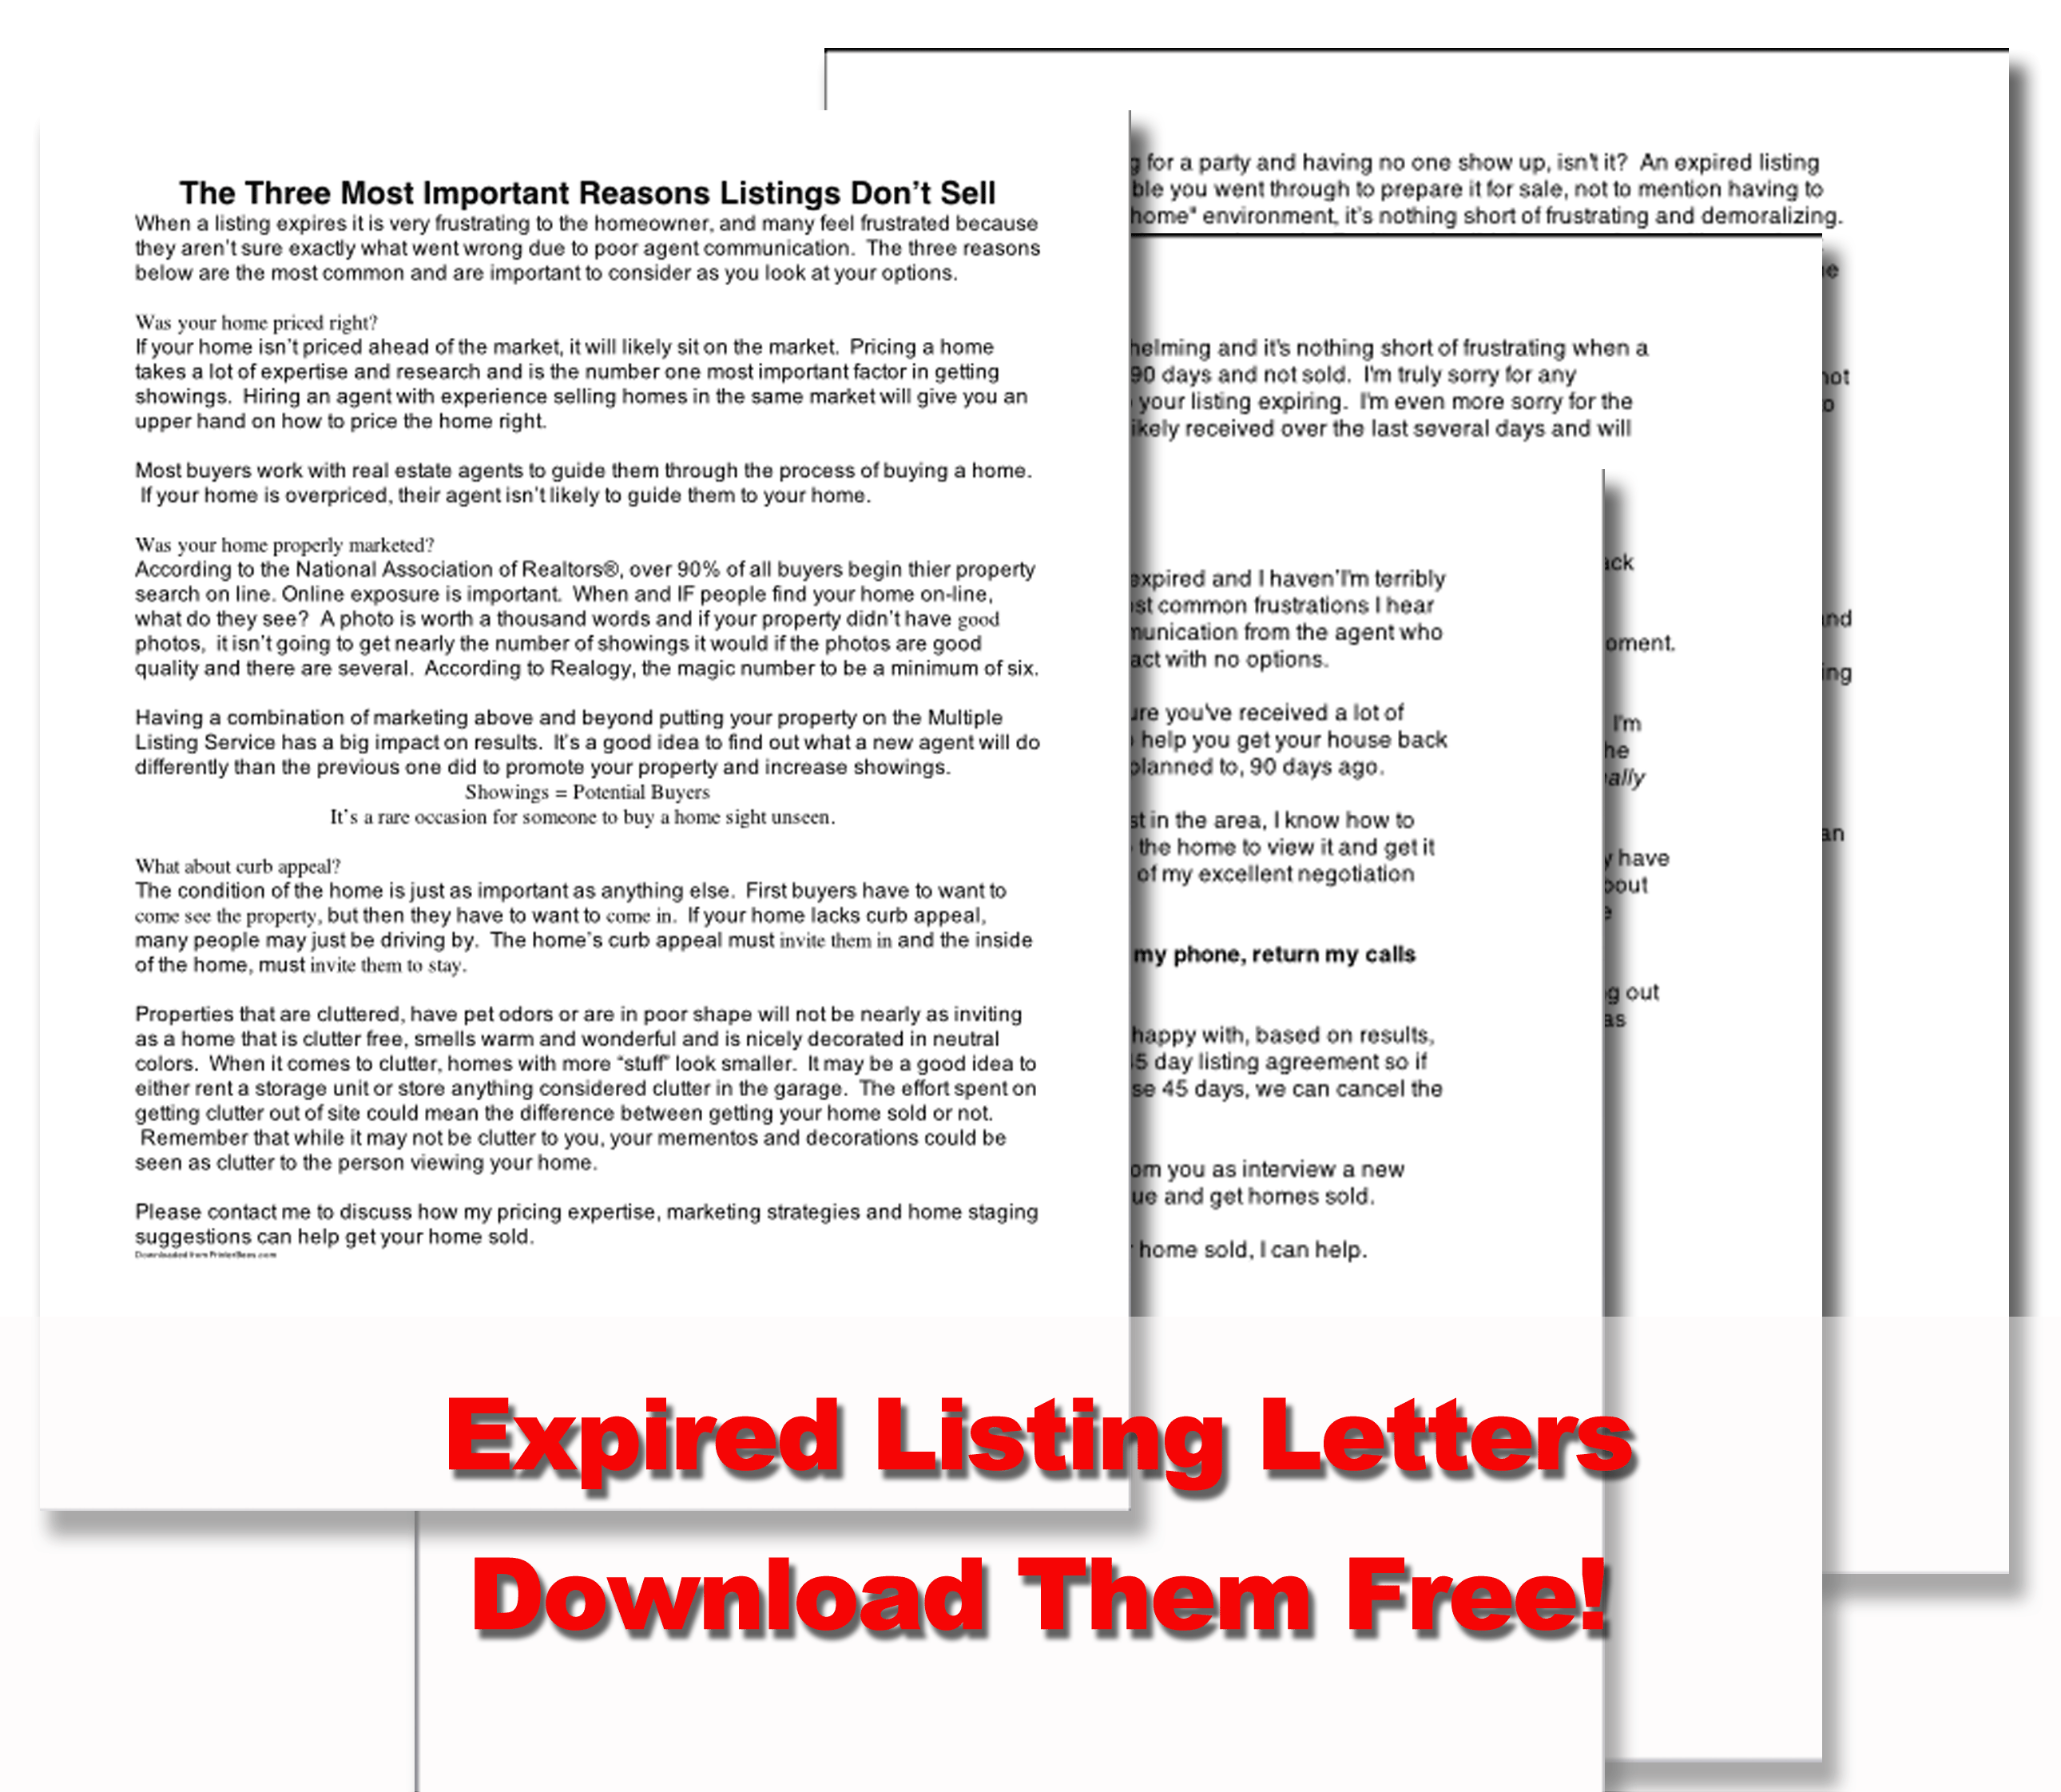 Expired Listing Letters   Real Estate Marketing Ideas